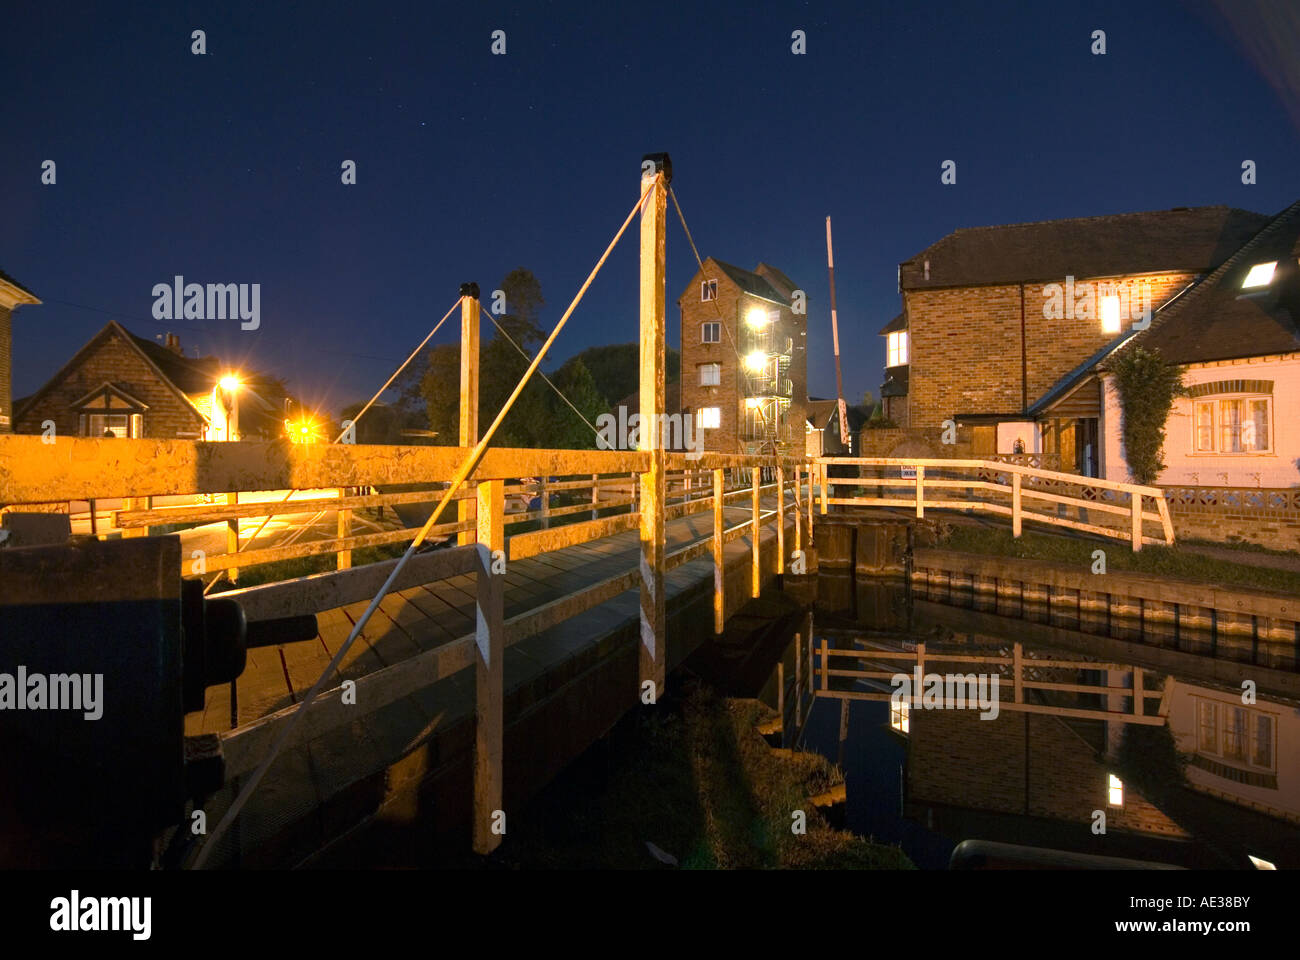 PICTURE CREDIT Doug Blane Swing bridge at night in Newbury on the kennet and avon canal Stock Photo